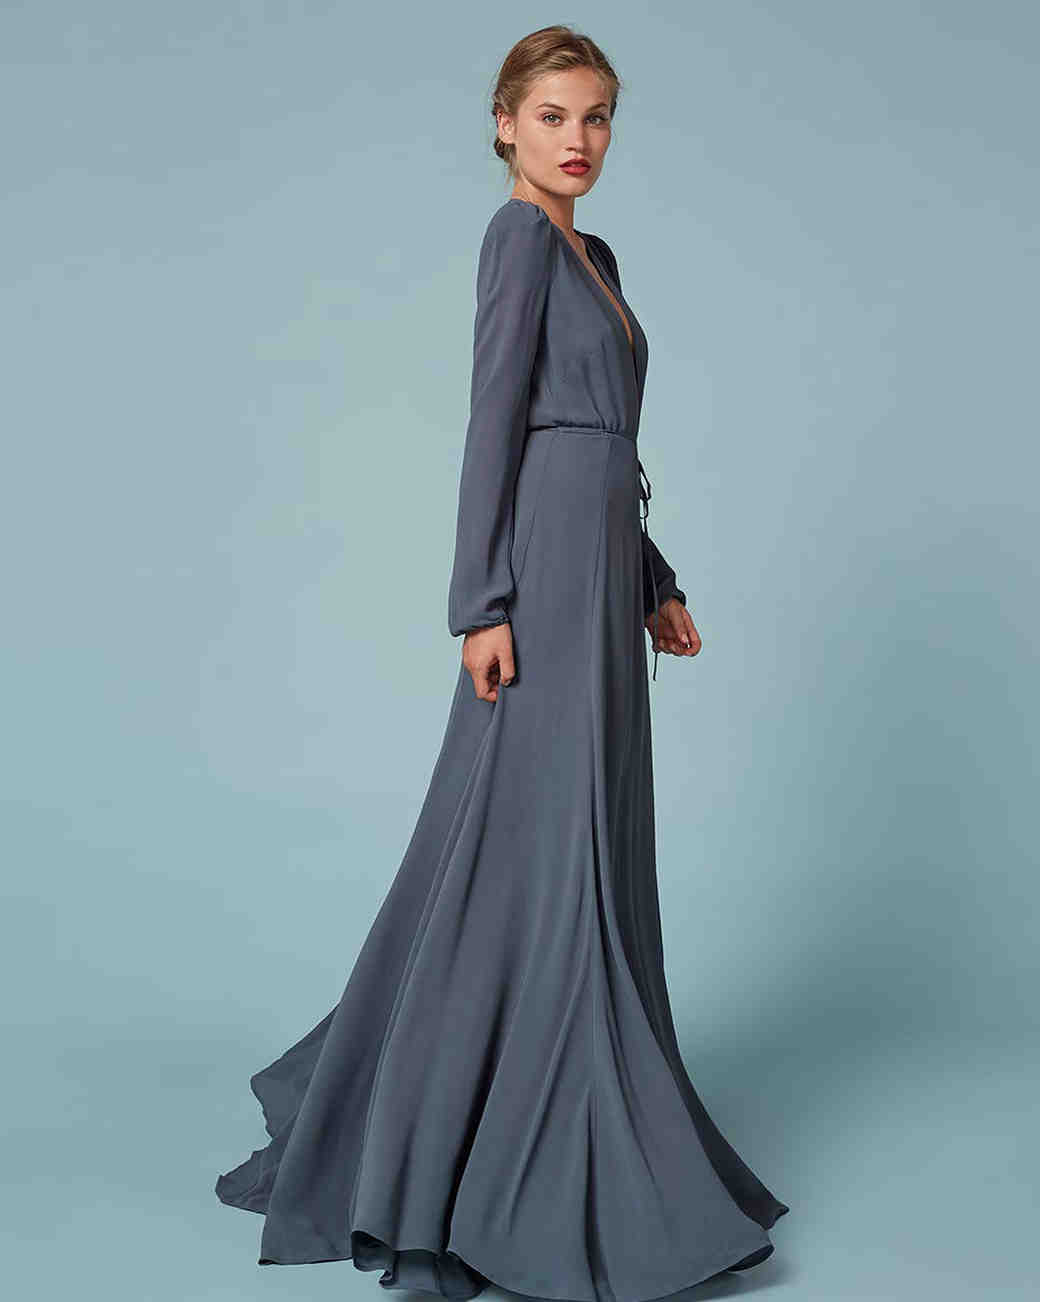 Winter bridesmaid dresses for a cold weather wedding martha winter bridesmaid dresses for a cold weather wedding martha stewart weddings ombrellifo Choice Image